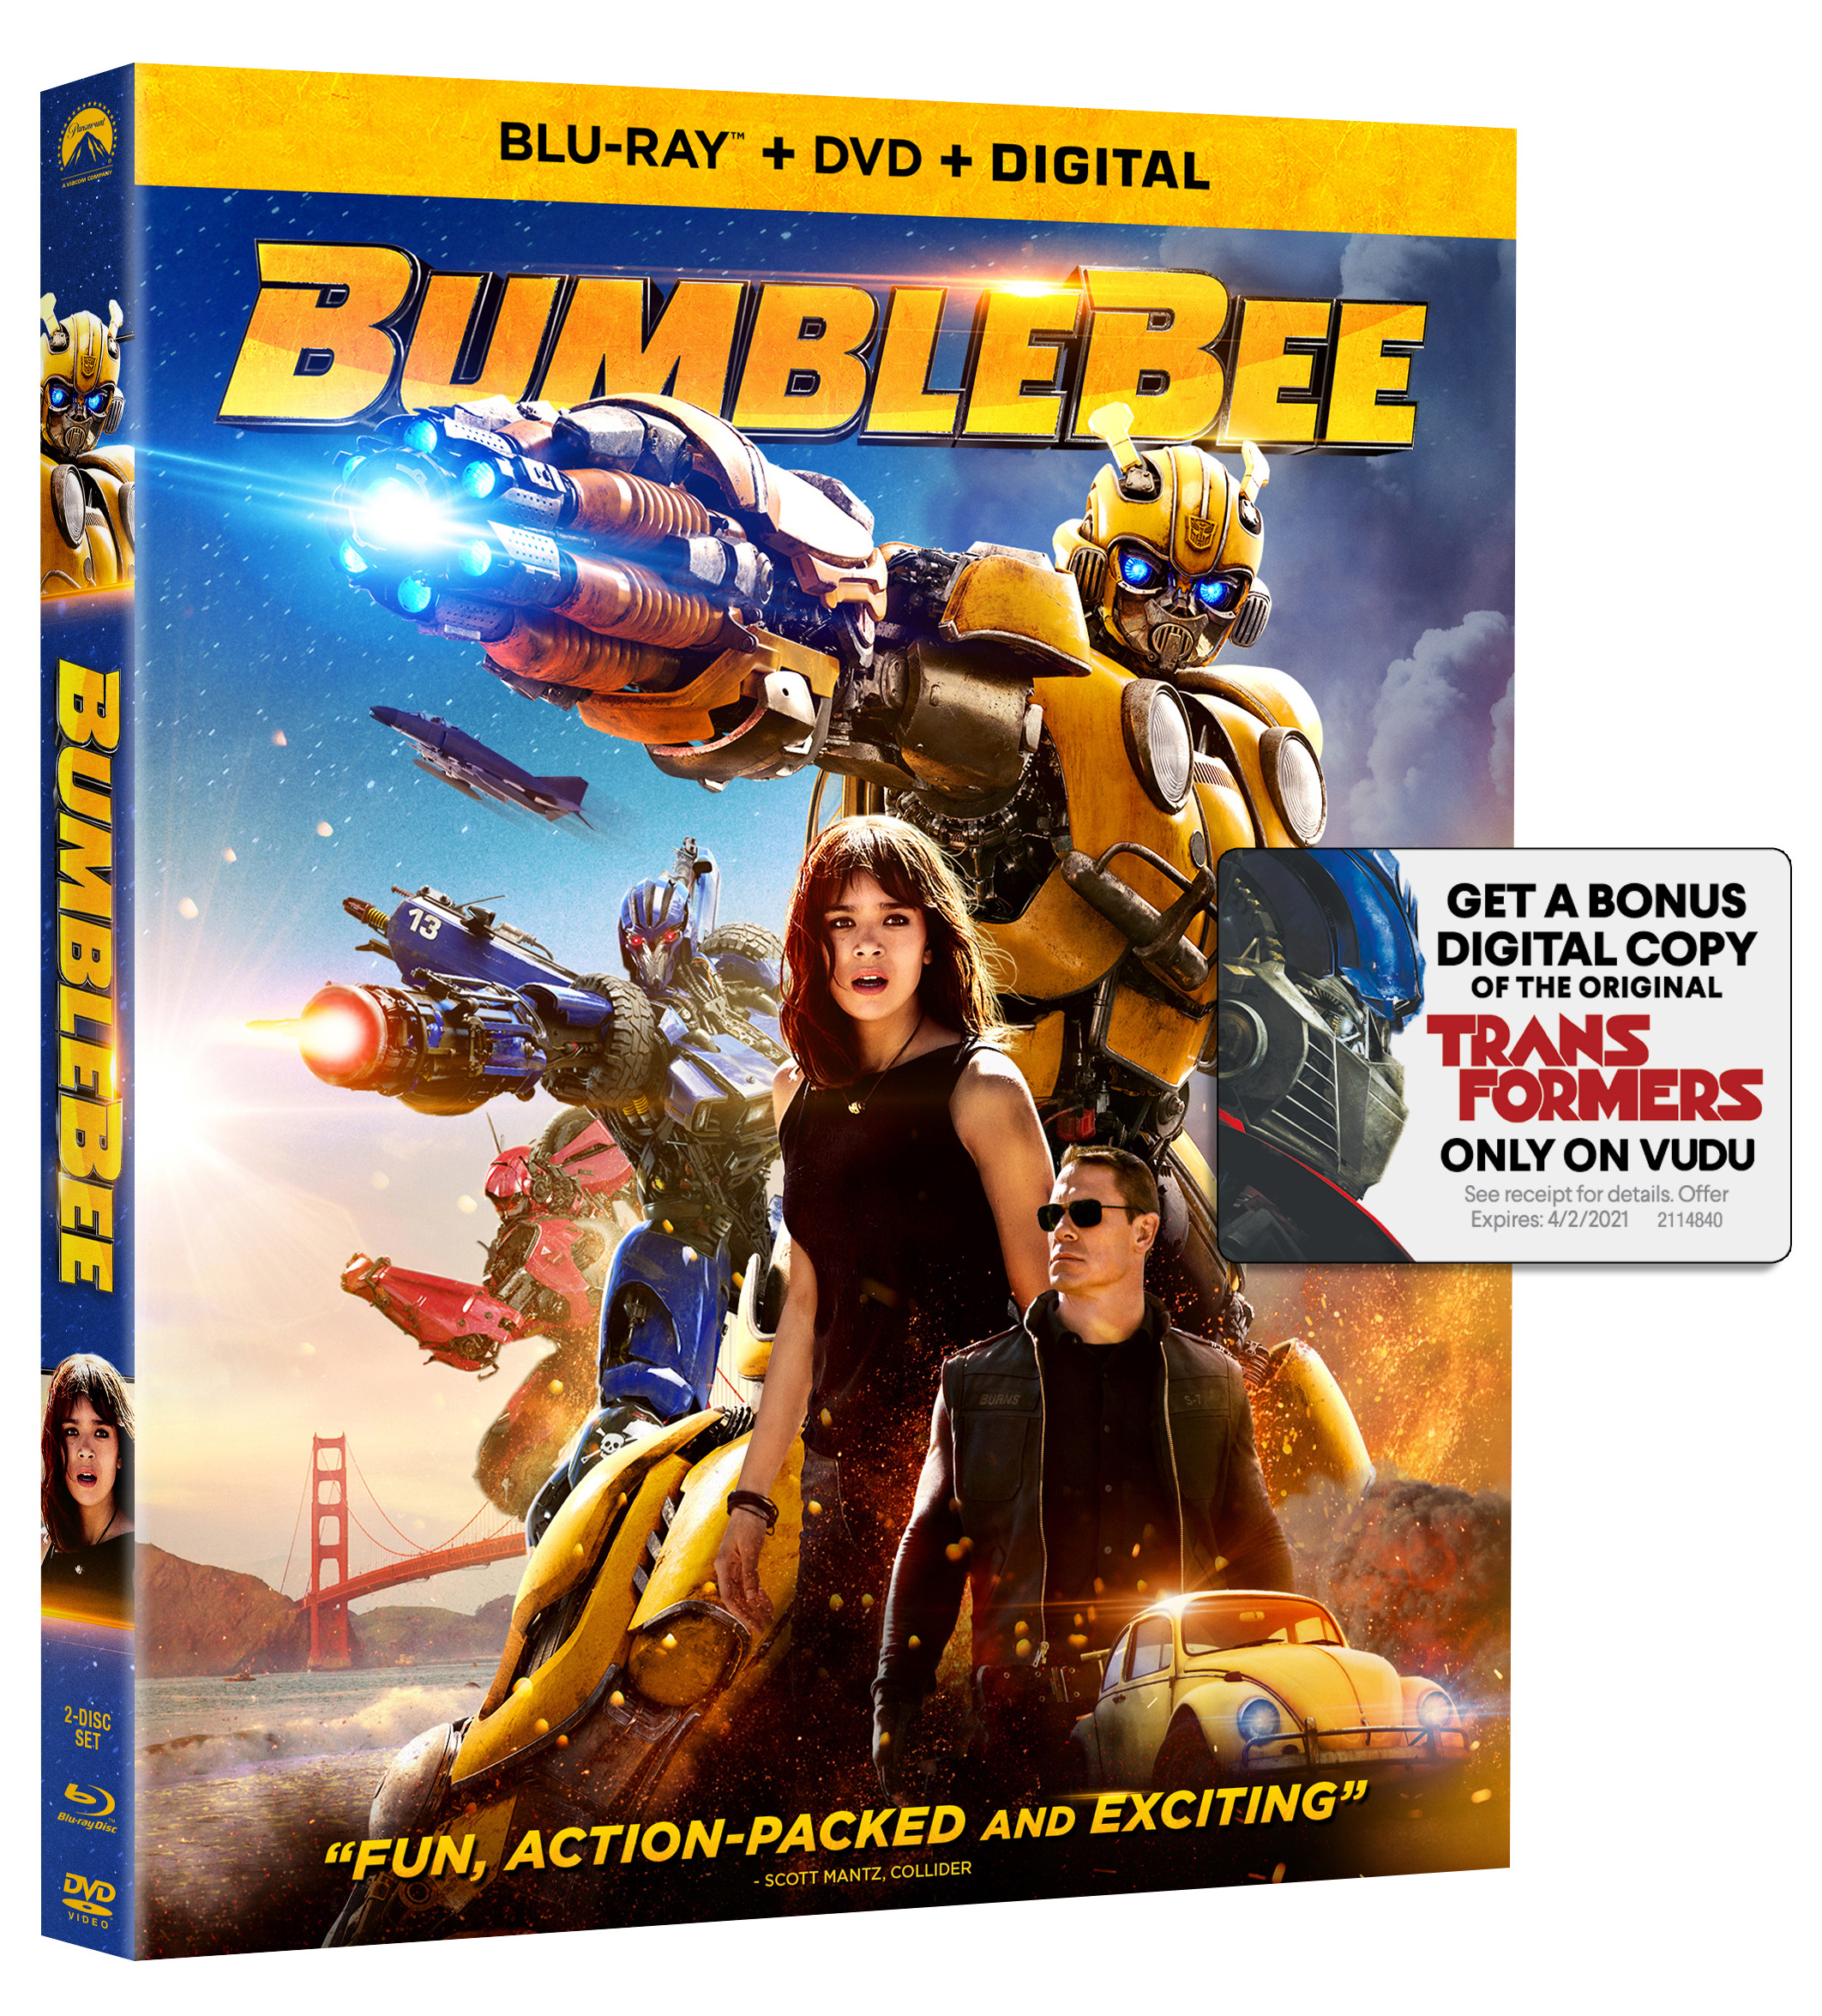 Bumblebee Movie DVD + Blu-ray Combo Pack With Free Digital